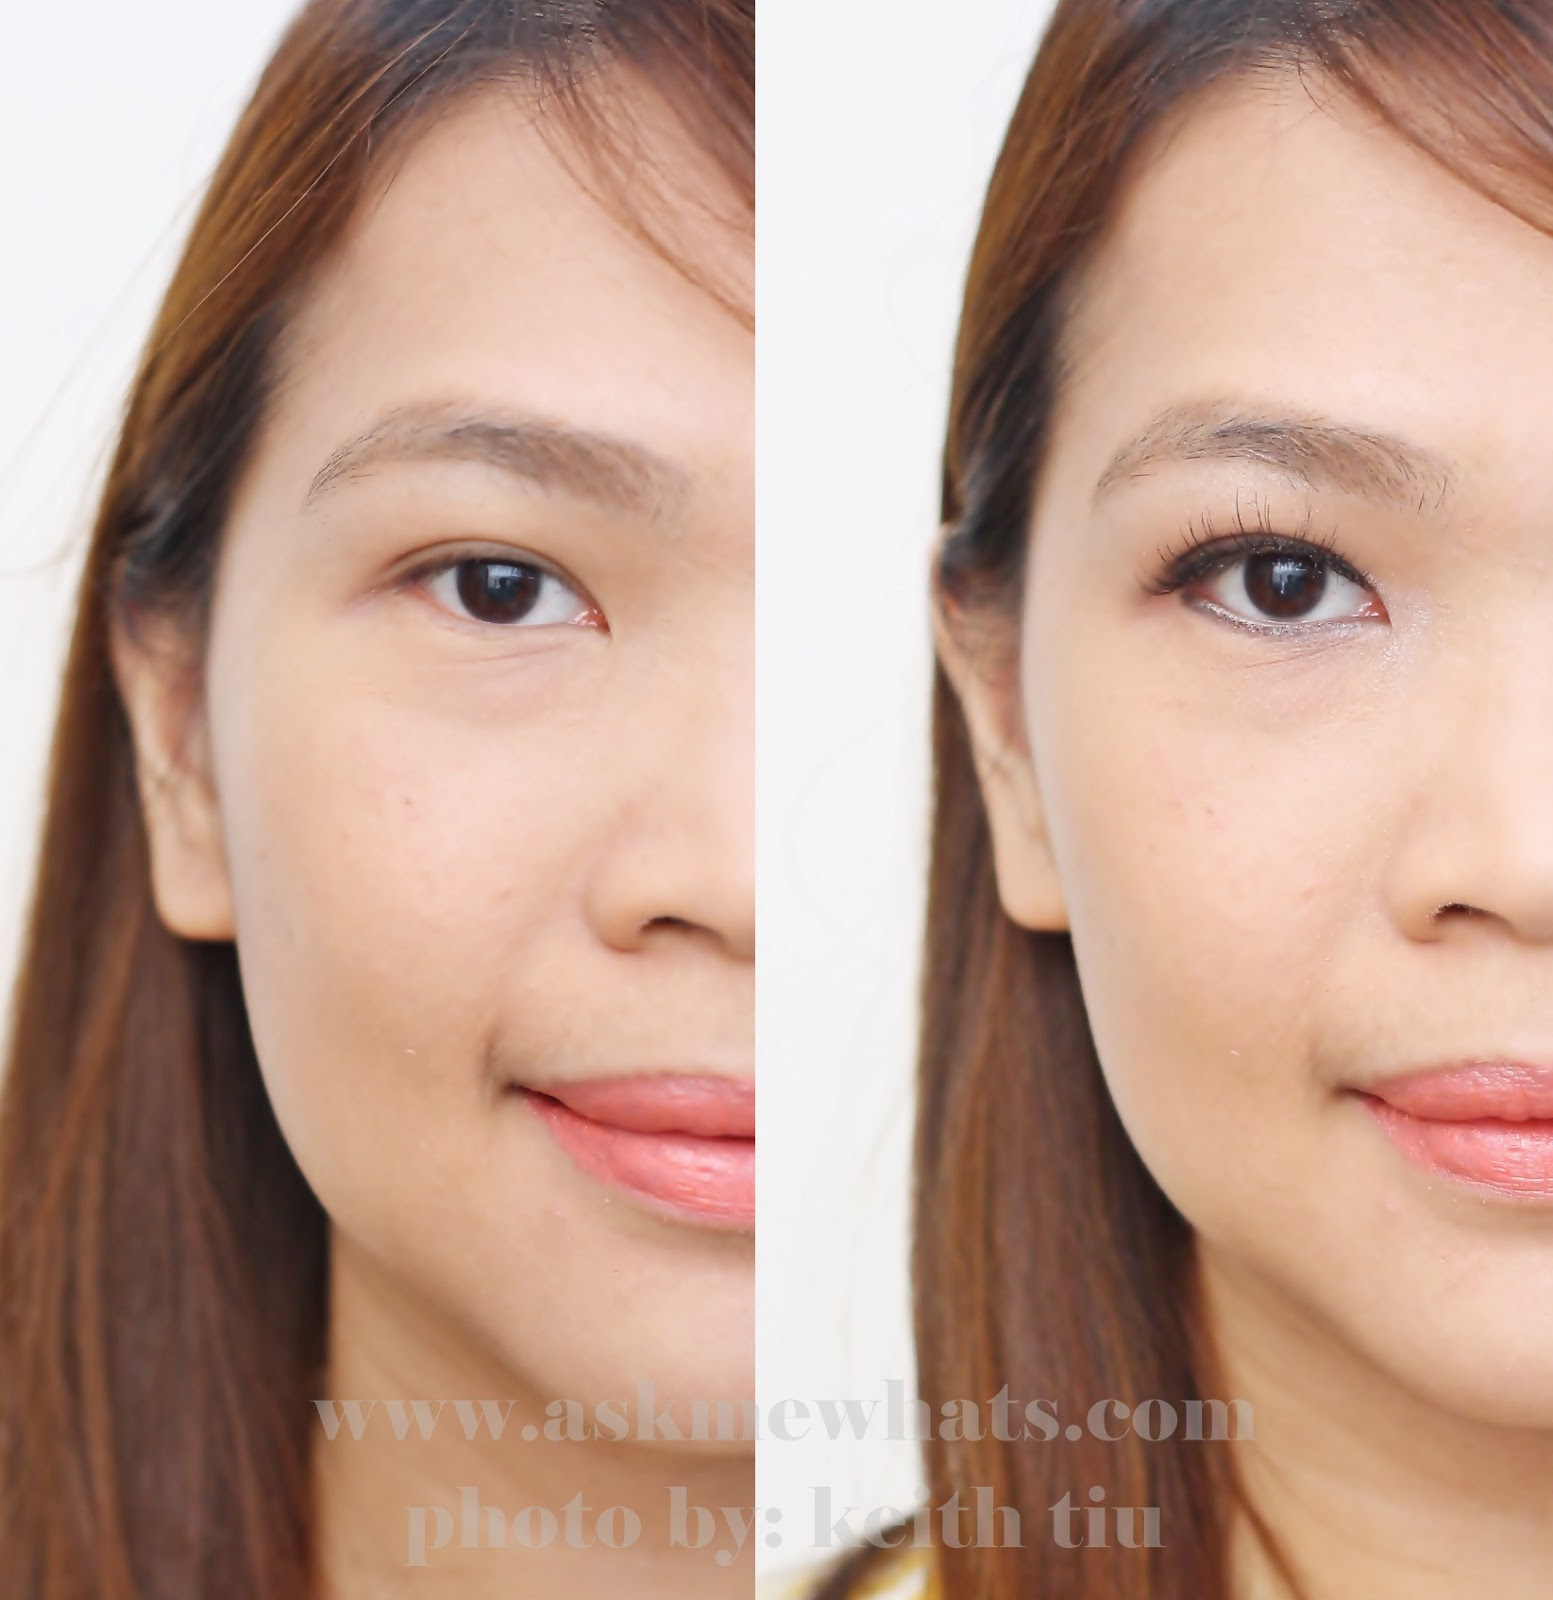 A photo on how to create bigger looking eyes in 5 minutes